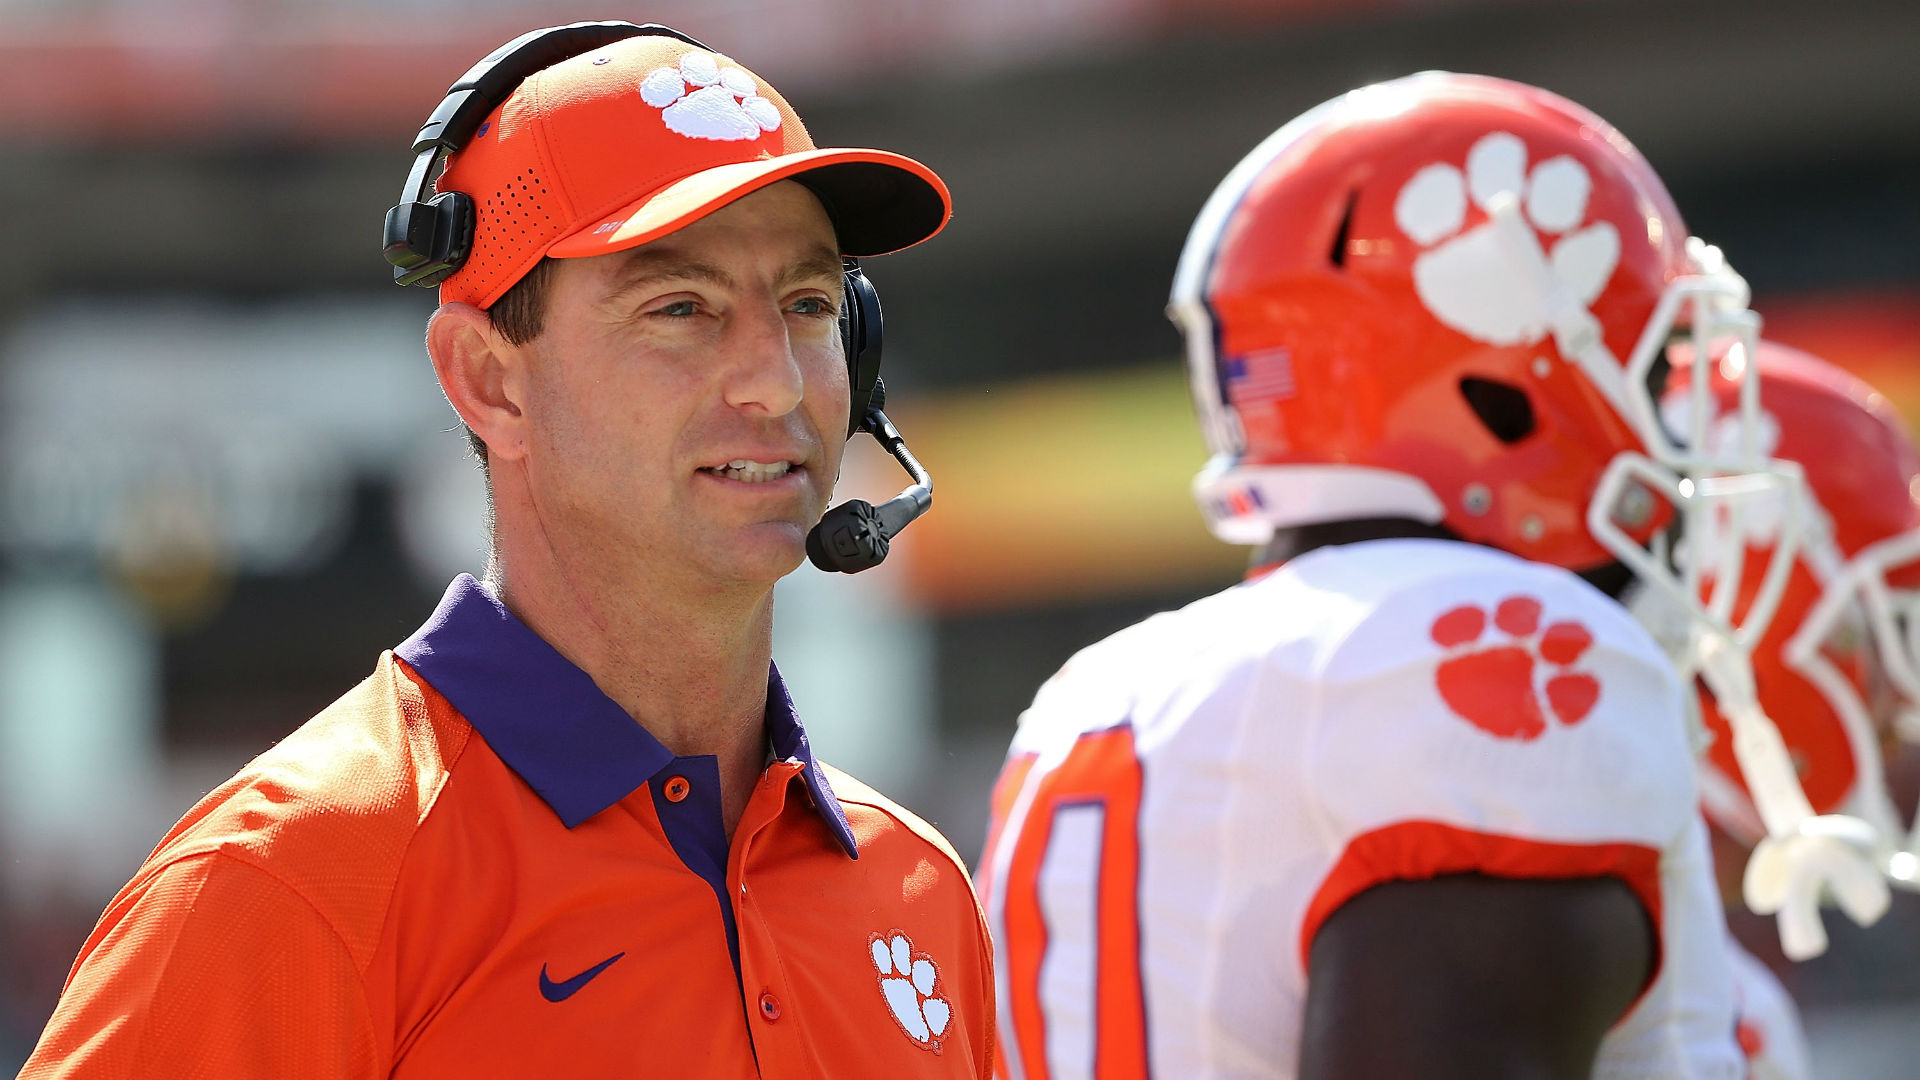 Dabo Swinney reacts to NC State laptop allegation, heated history between schools